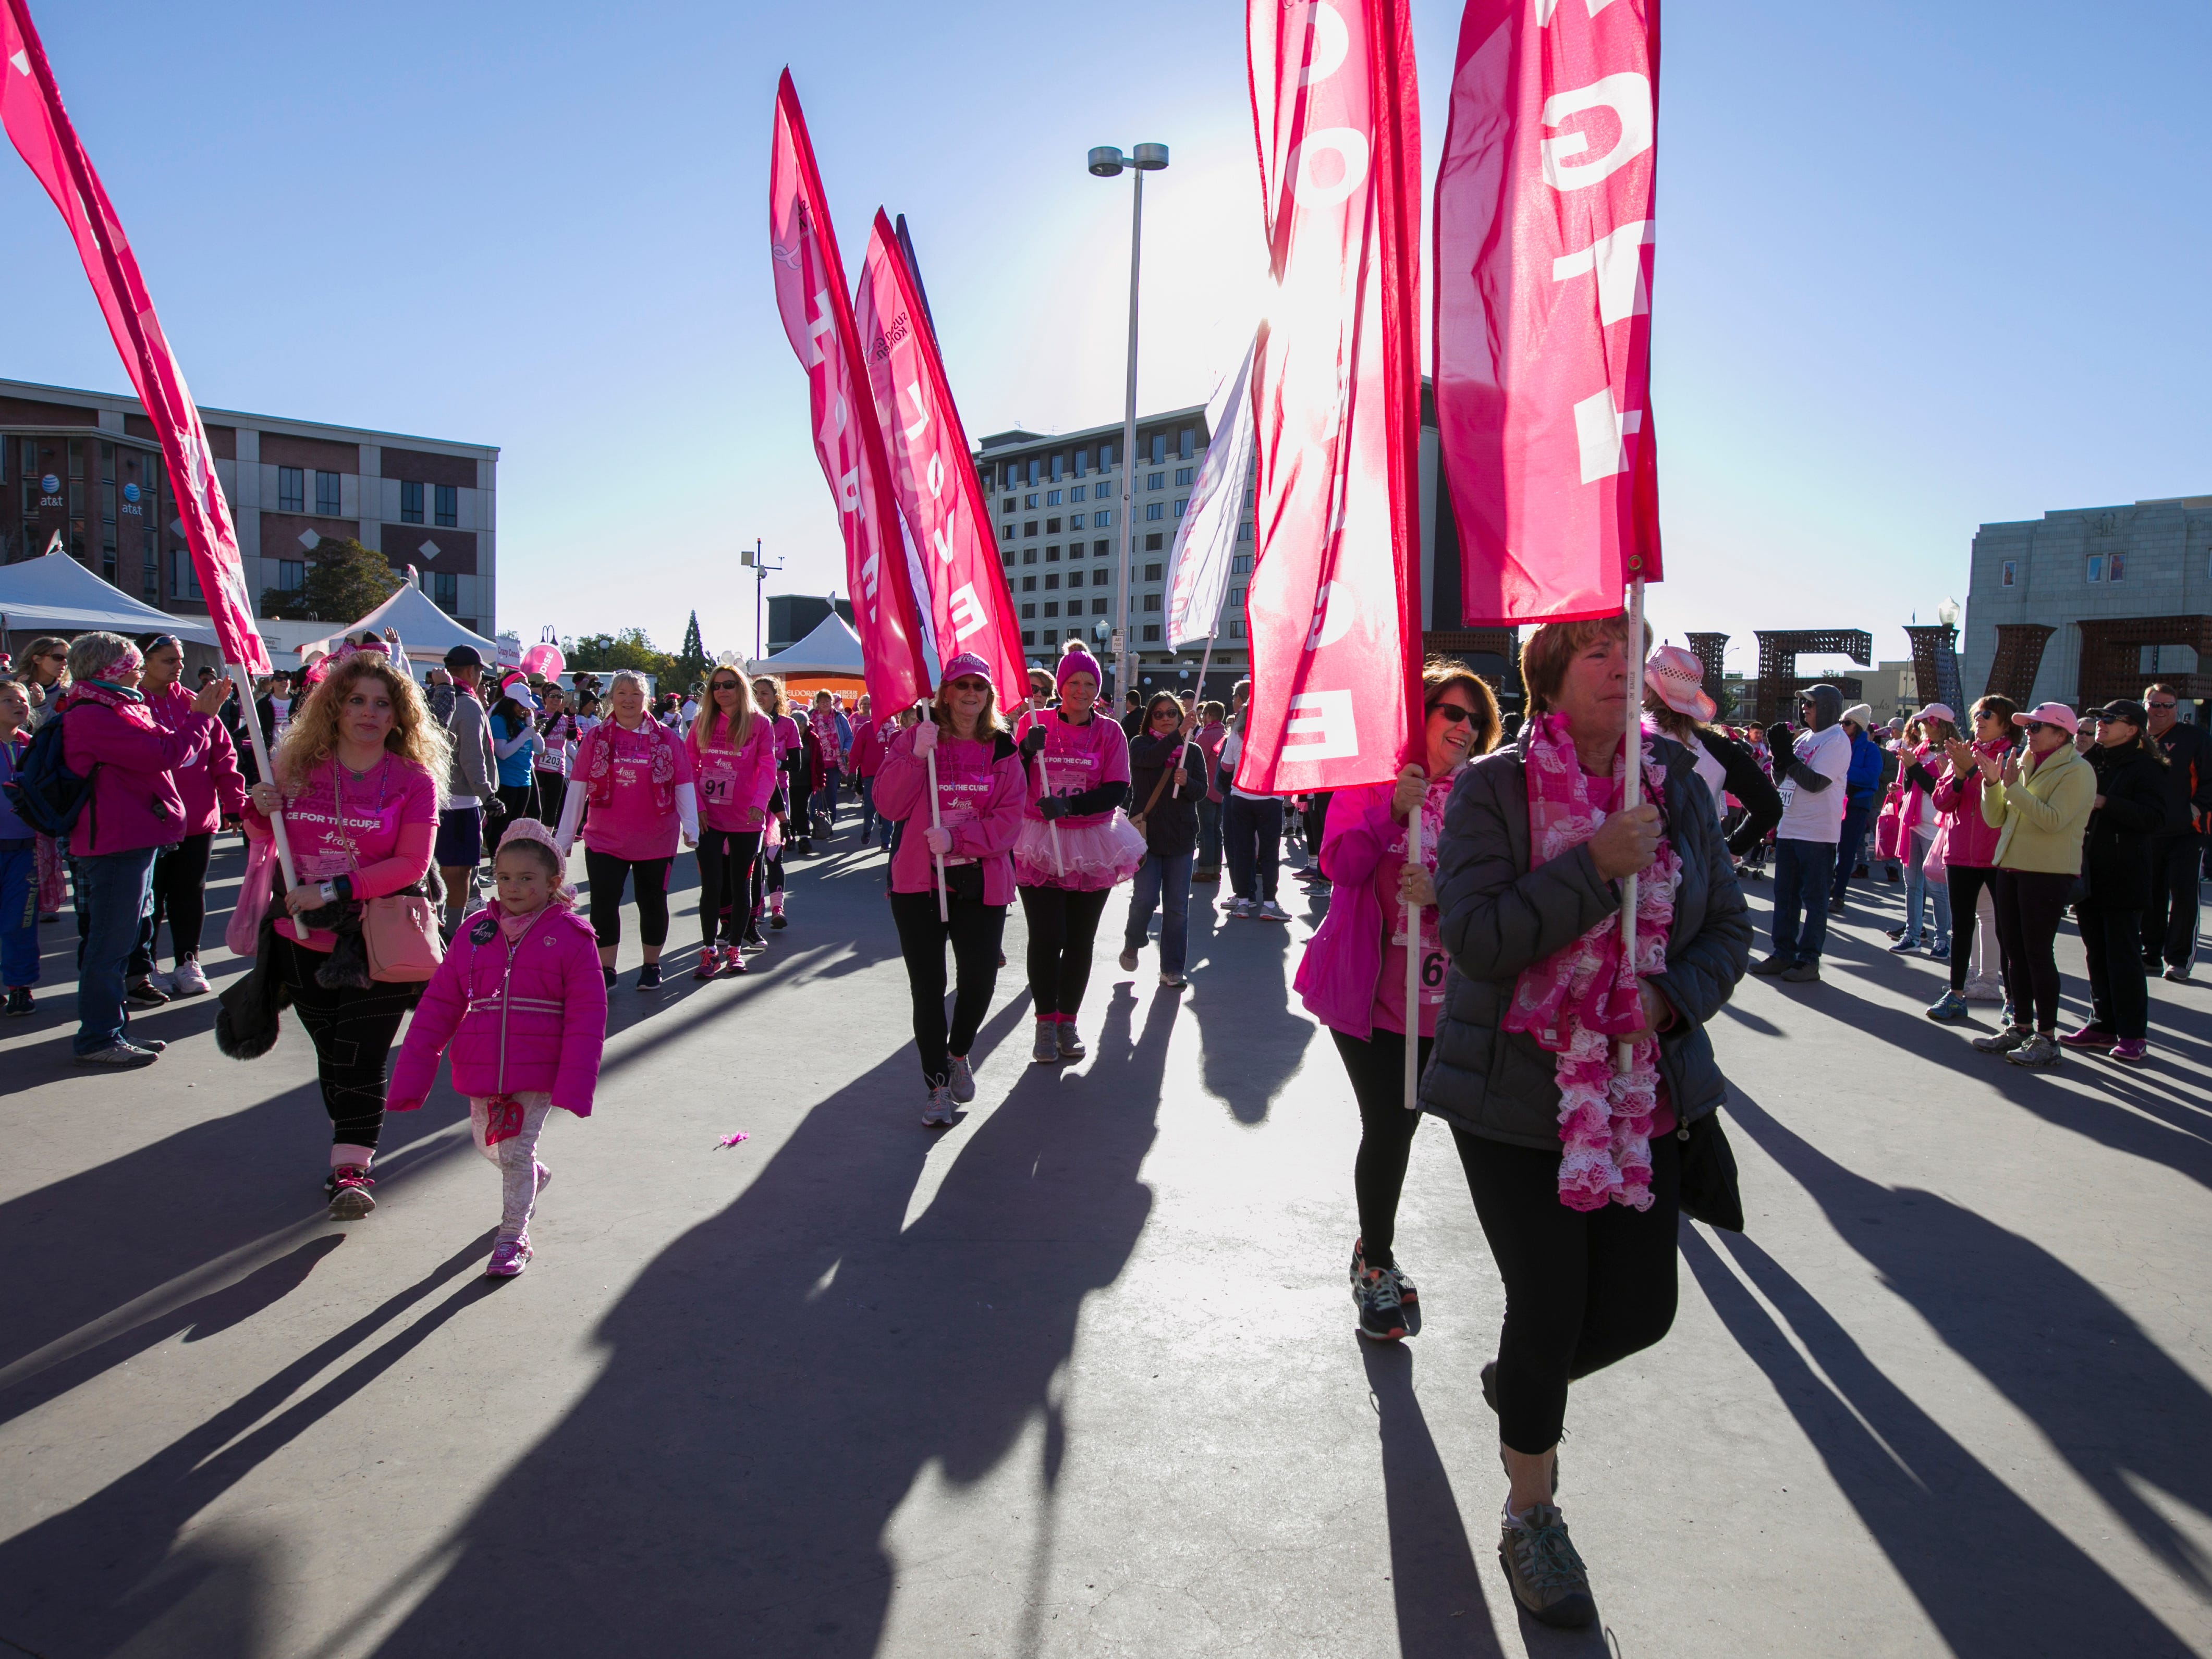 The Survivors Walk before the Susan G. Komen Race for the Cure on Sunday, October 14,  2018 in downtown Reno.